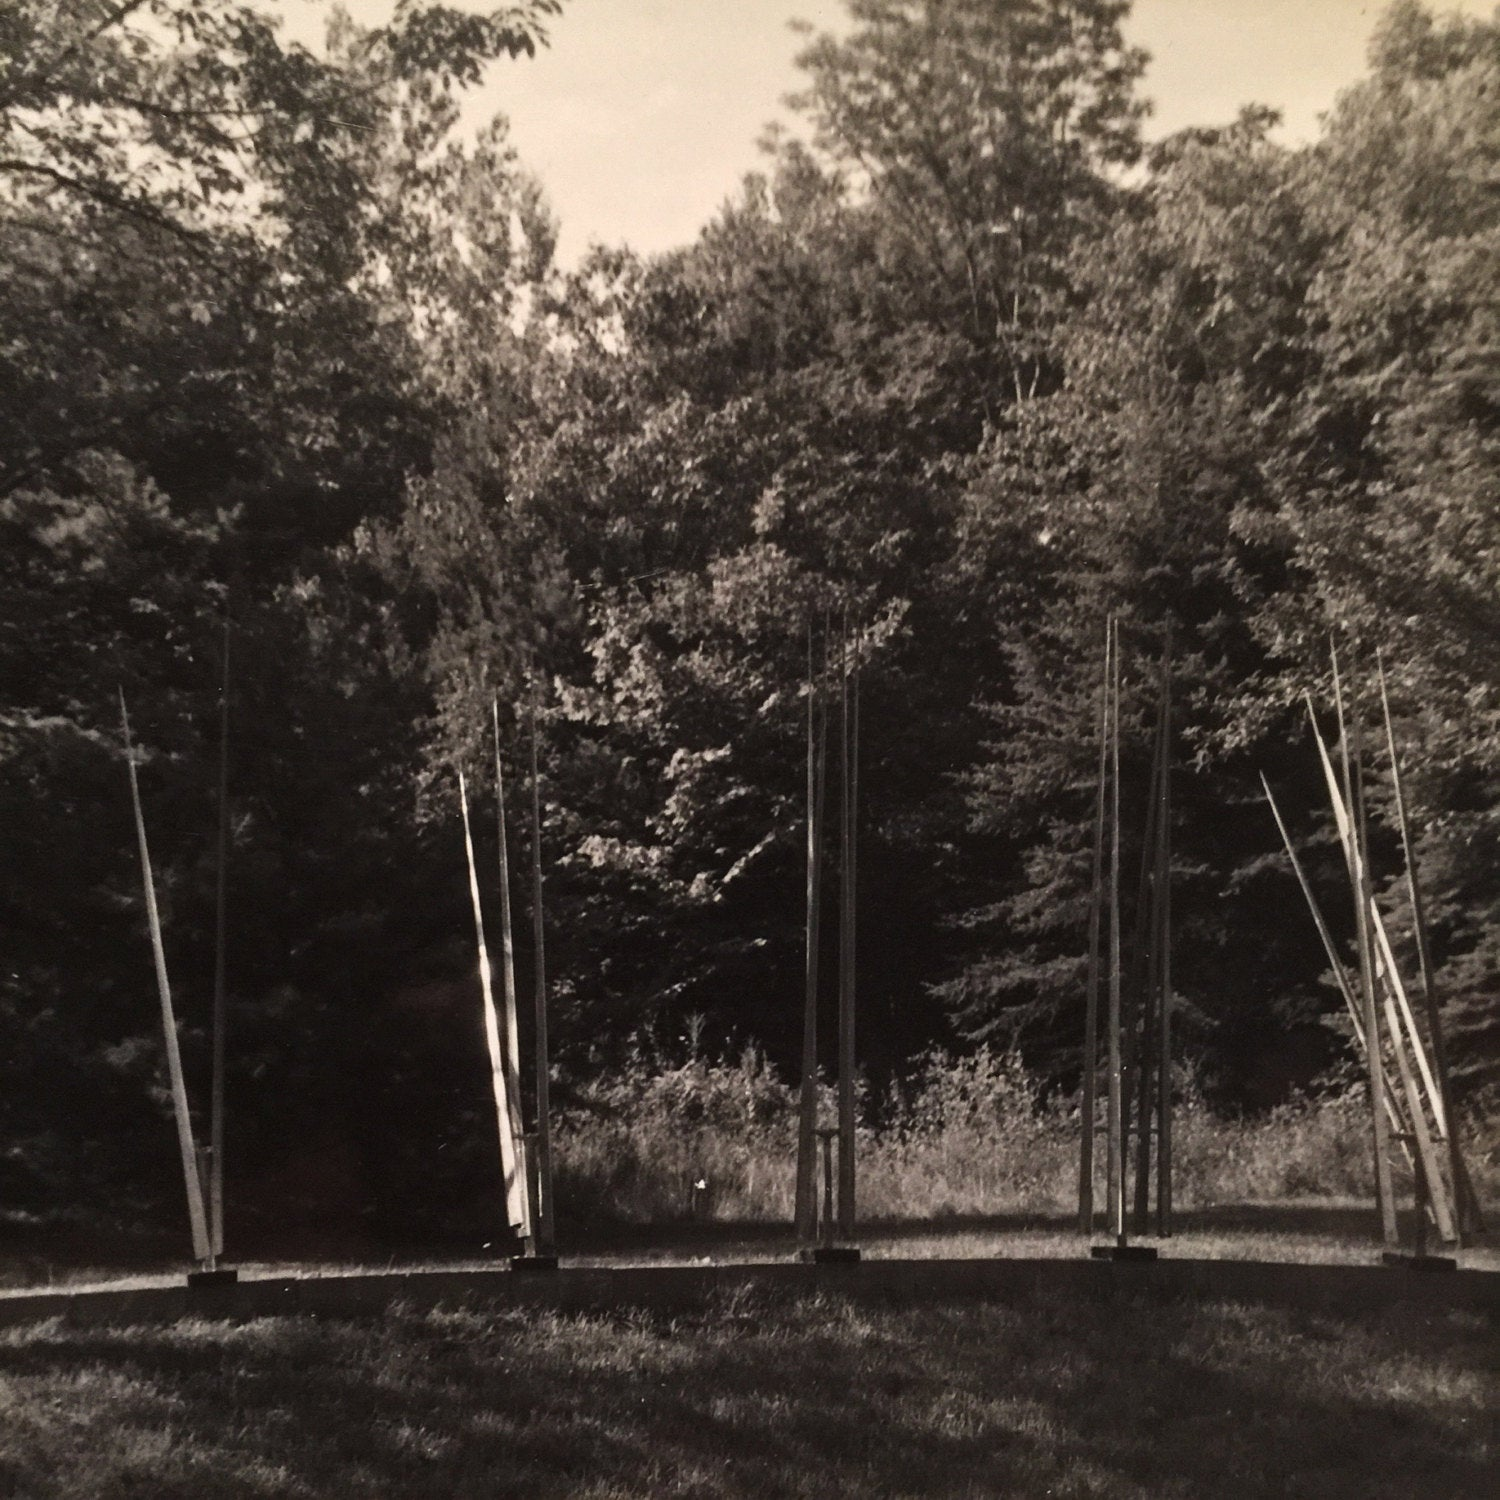 George Rickey Kinetic Sculpture Photograph - Marked Studio Estate Collection - Peristyle - Six Lines - Rare - East Chatham New York